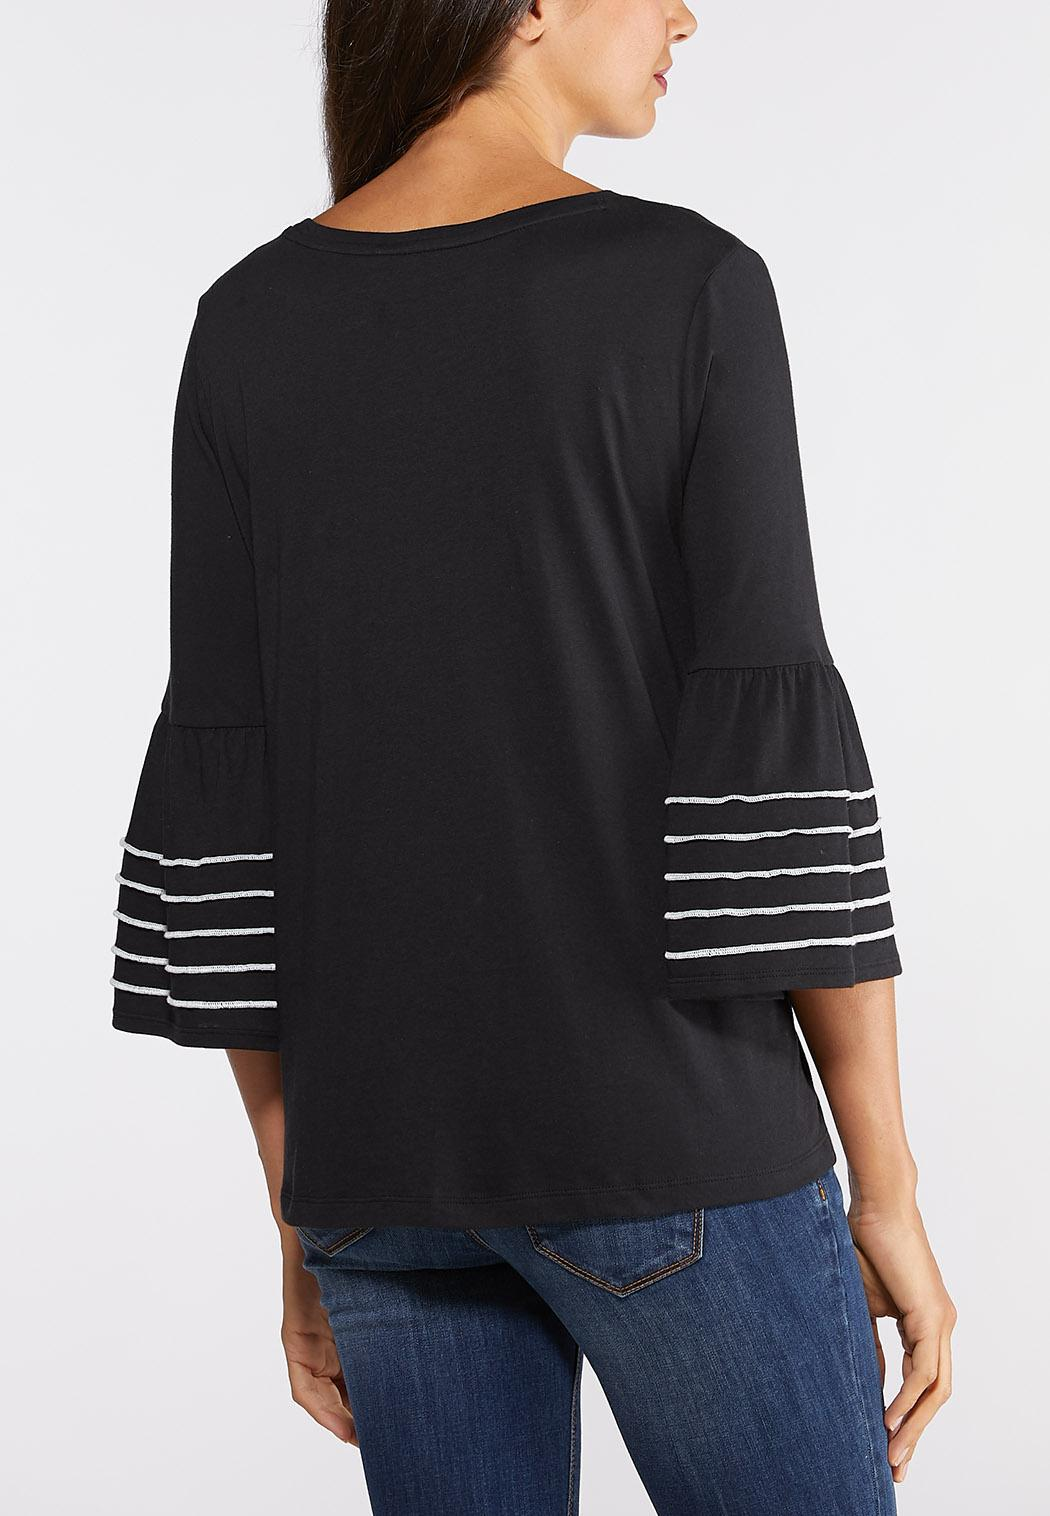 Piped Bell Top (Item #43925558)